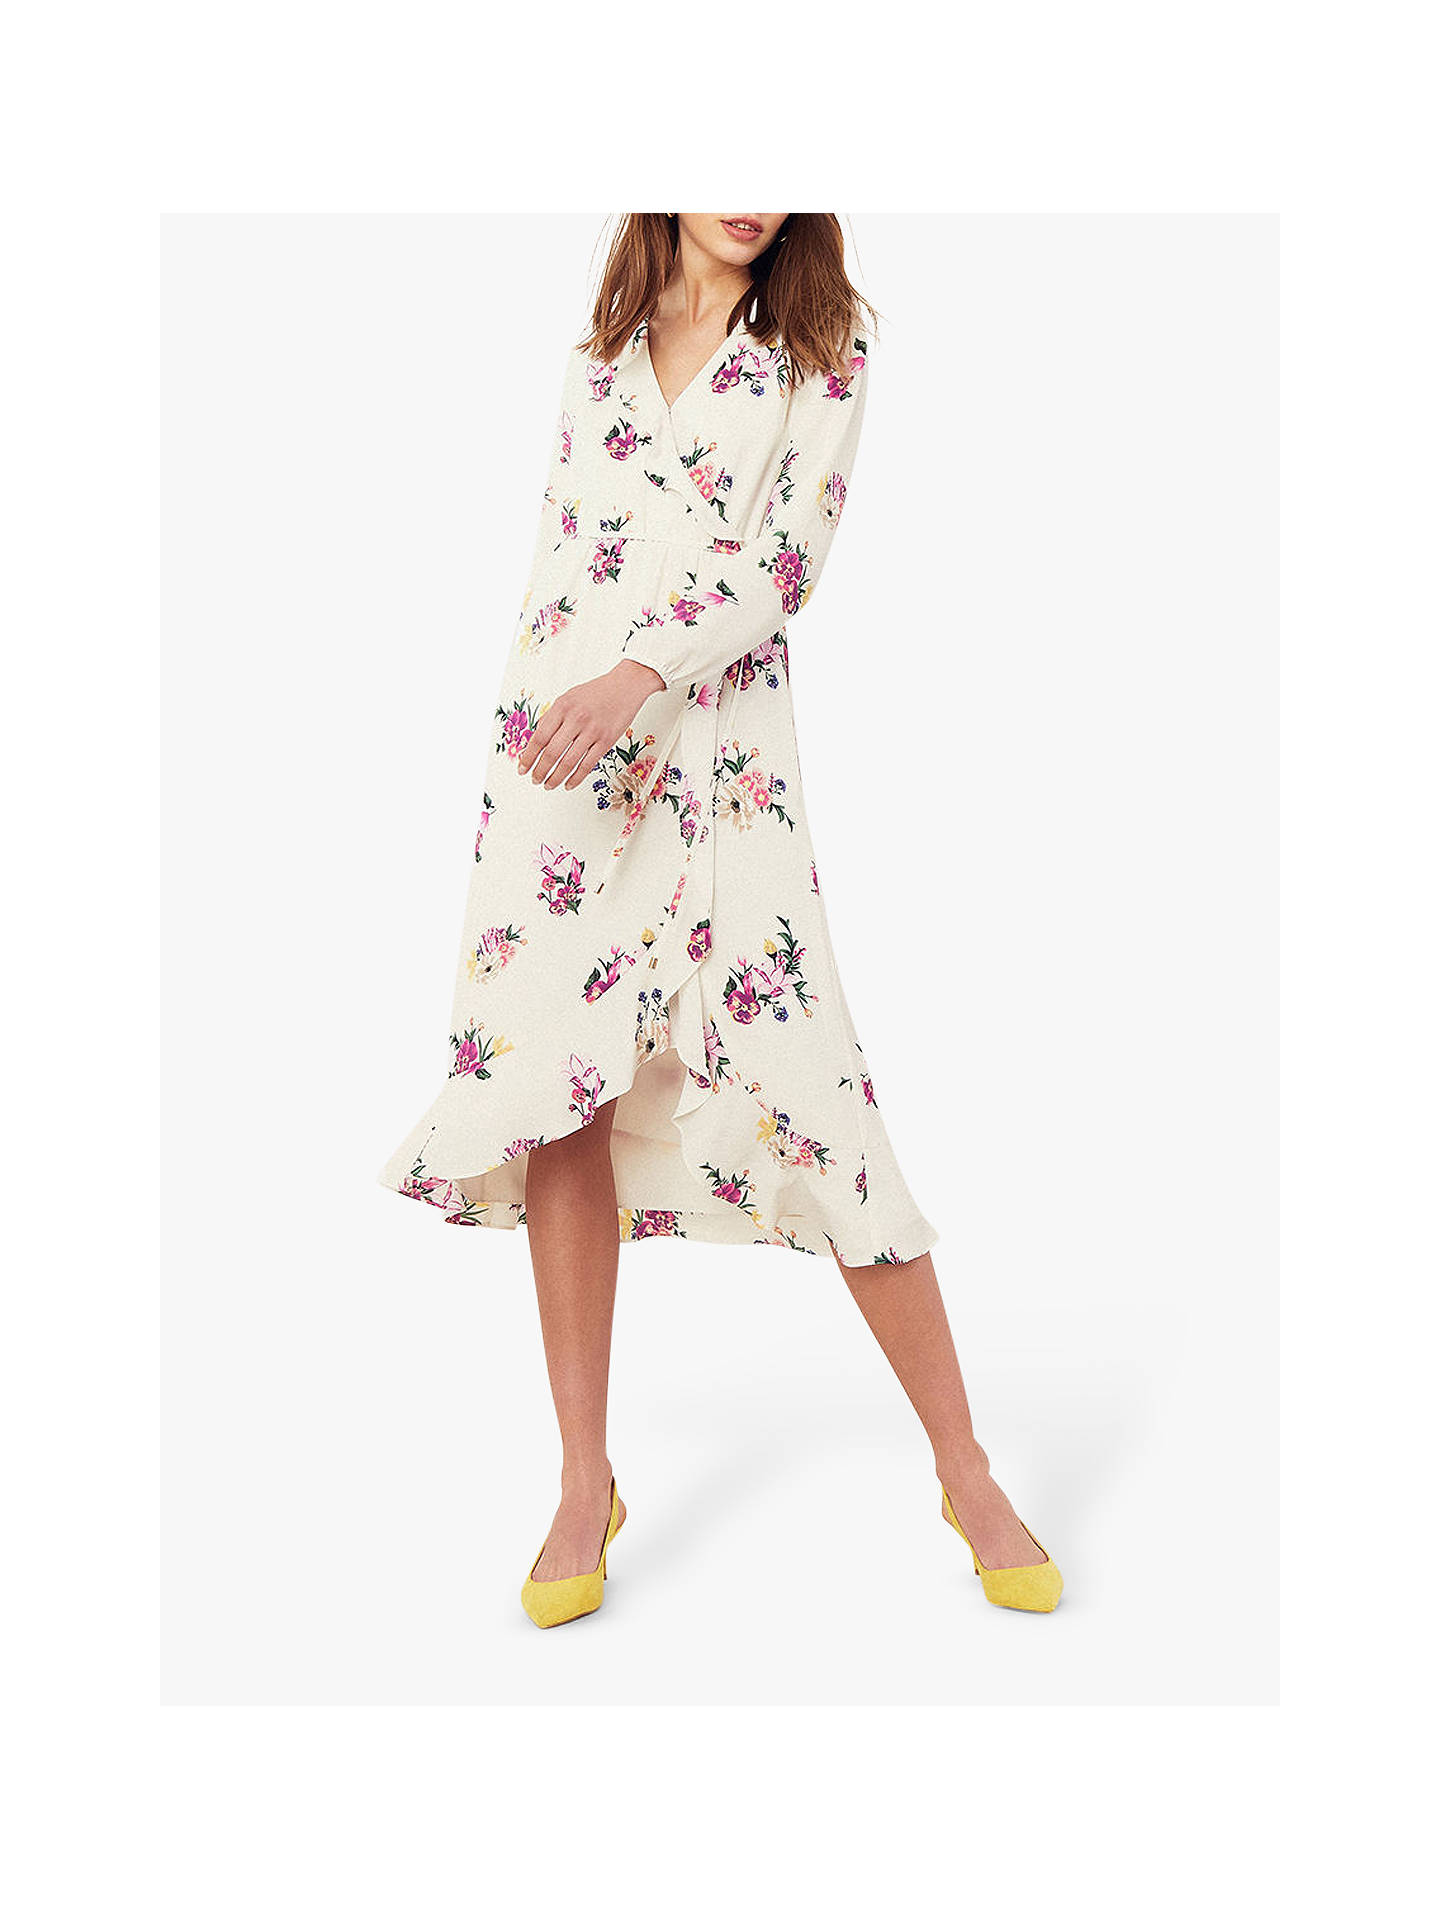 830fccb9d293 Buy Oasis Garden Chiffon Dress, Multi/Natural, 8 Online at johnlewis.com ...